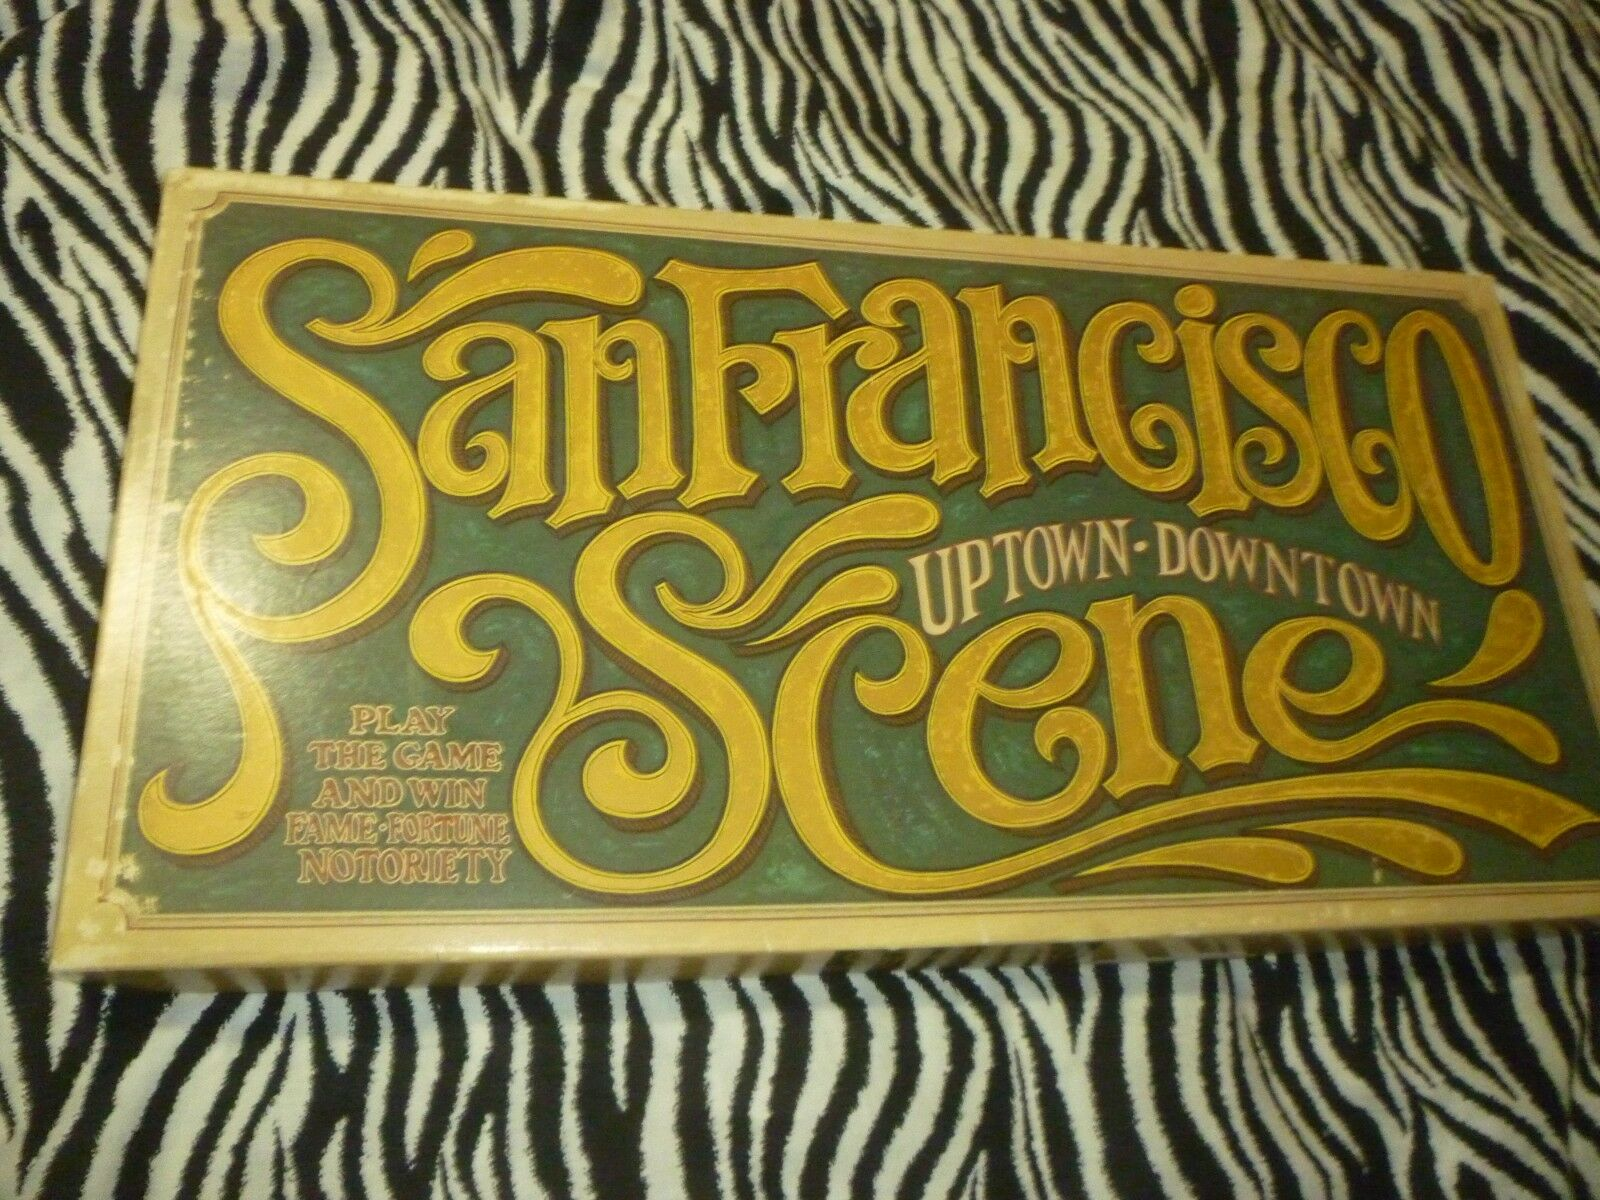 San Francisco Scene 1977 Vintage Board Game - Used Good Condition